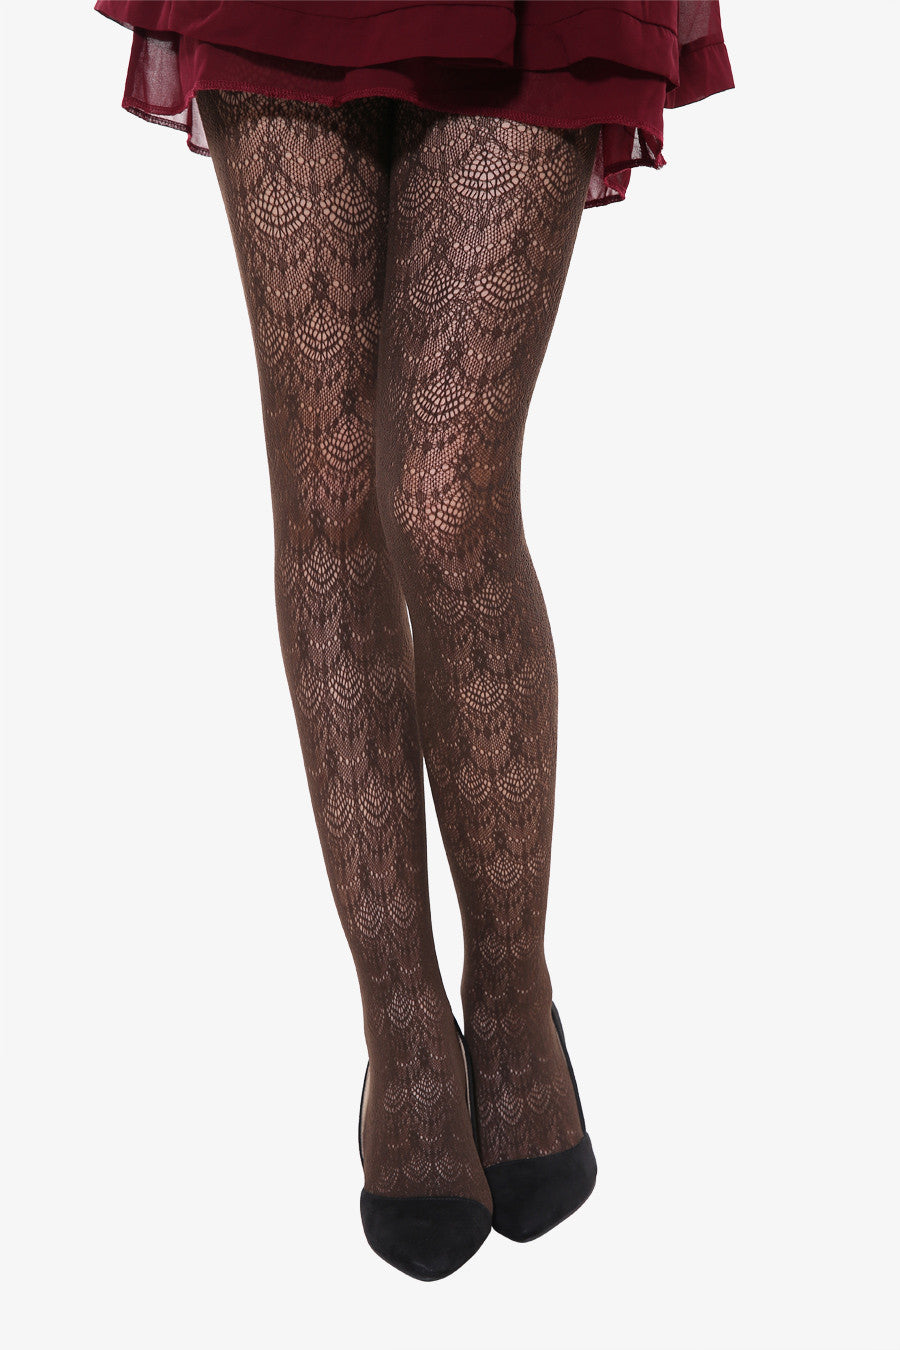 Peacock Tails Tights In Brown